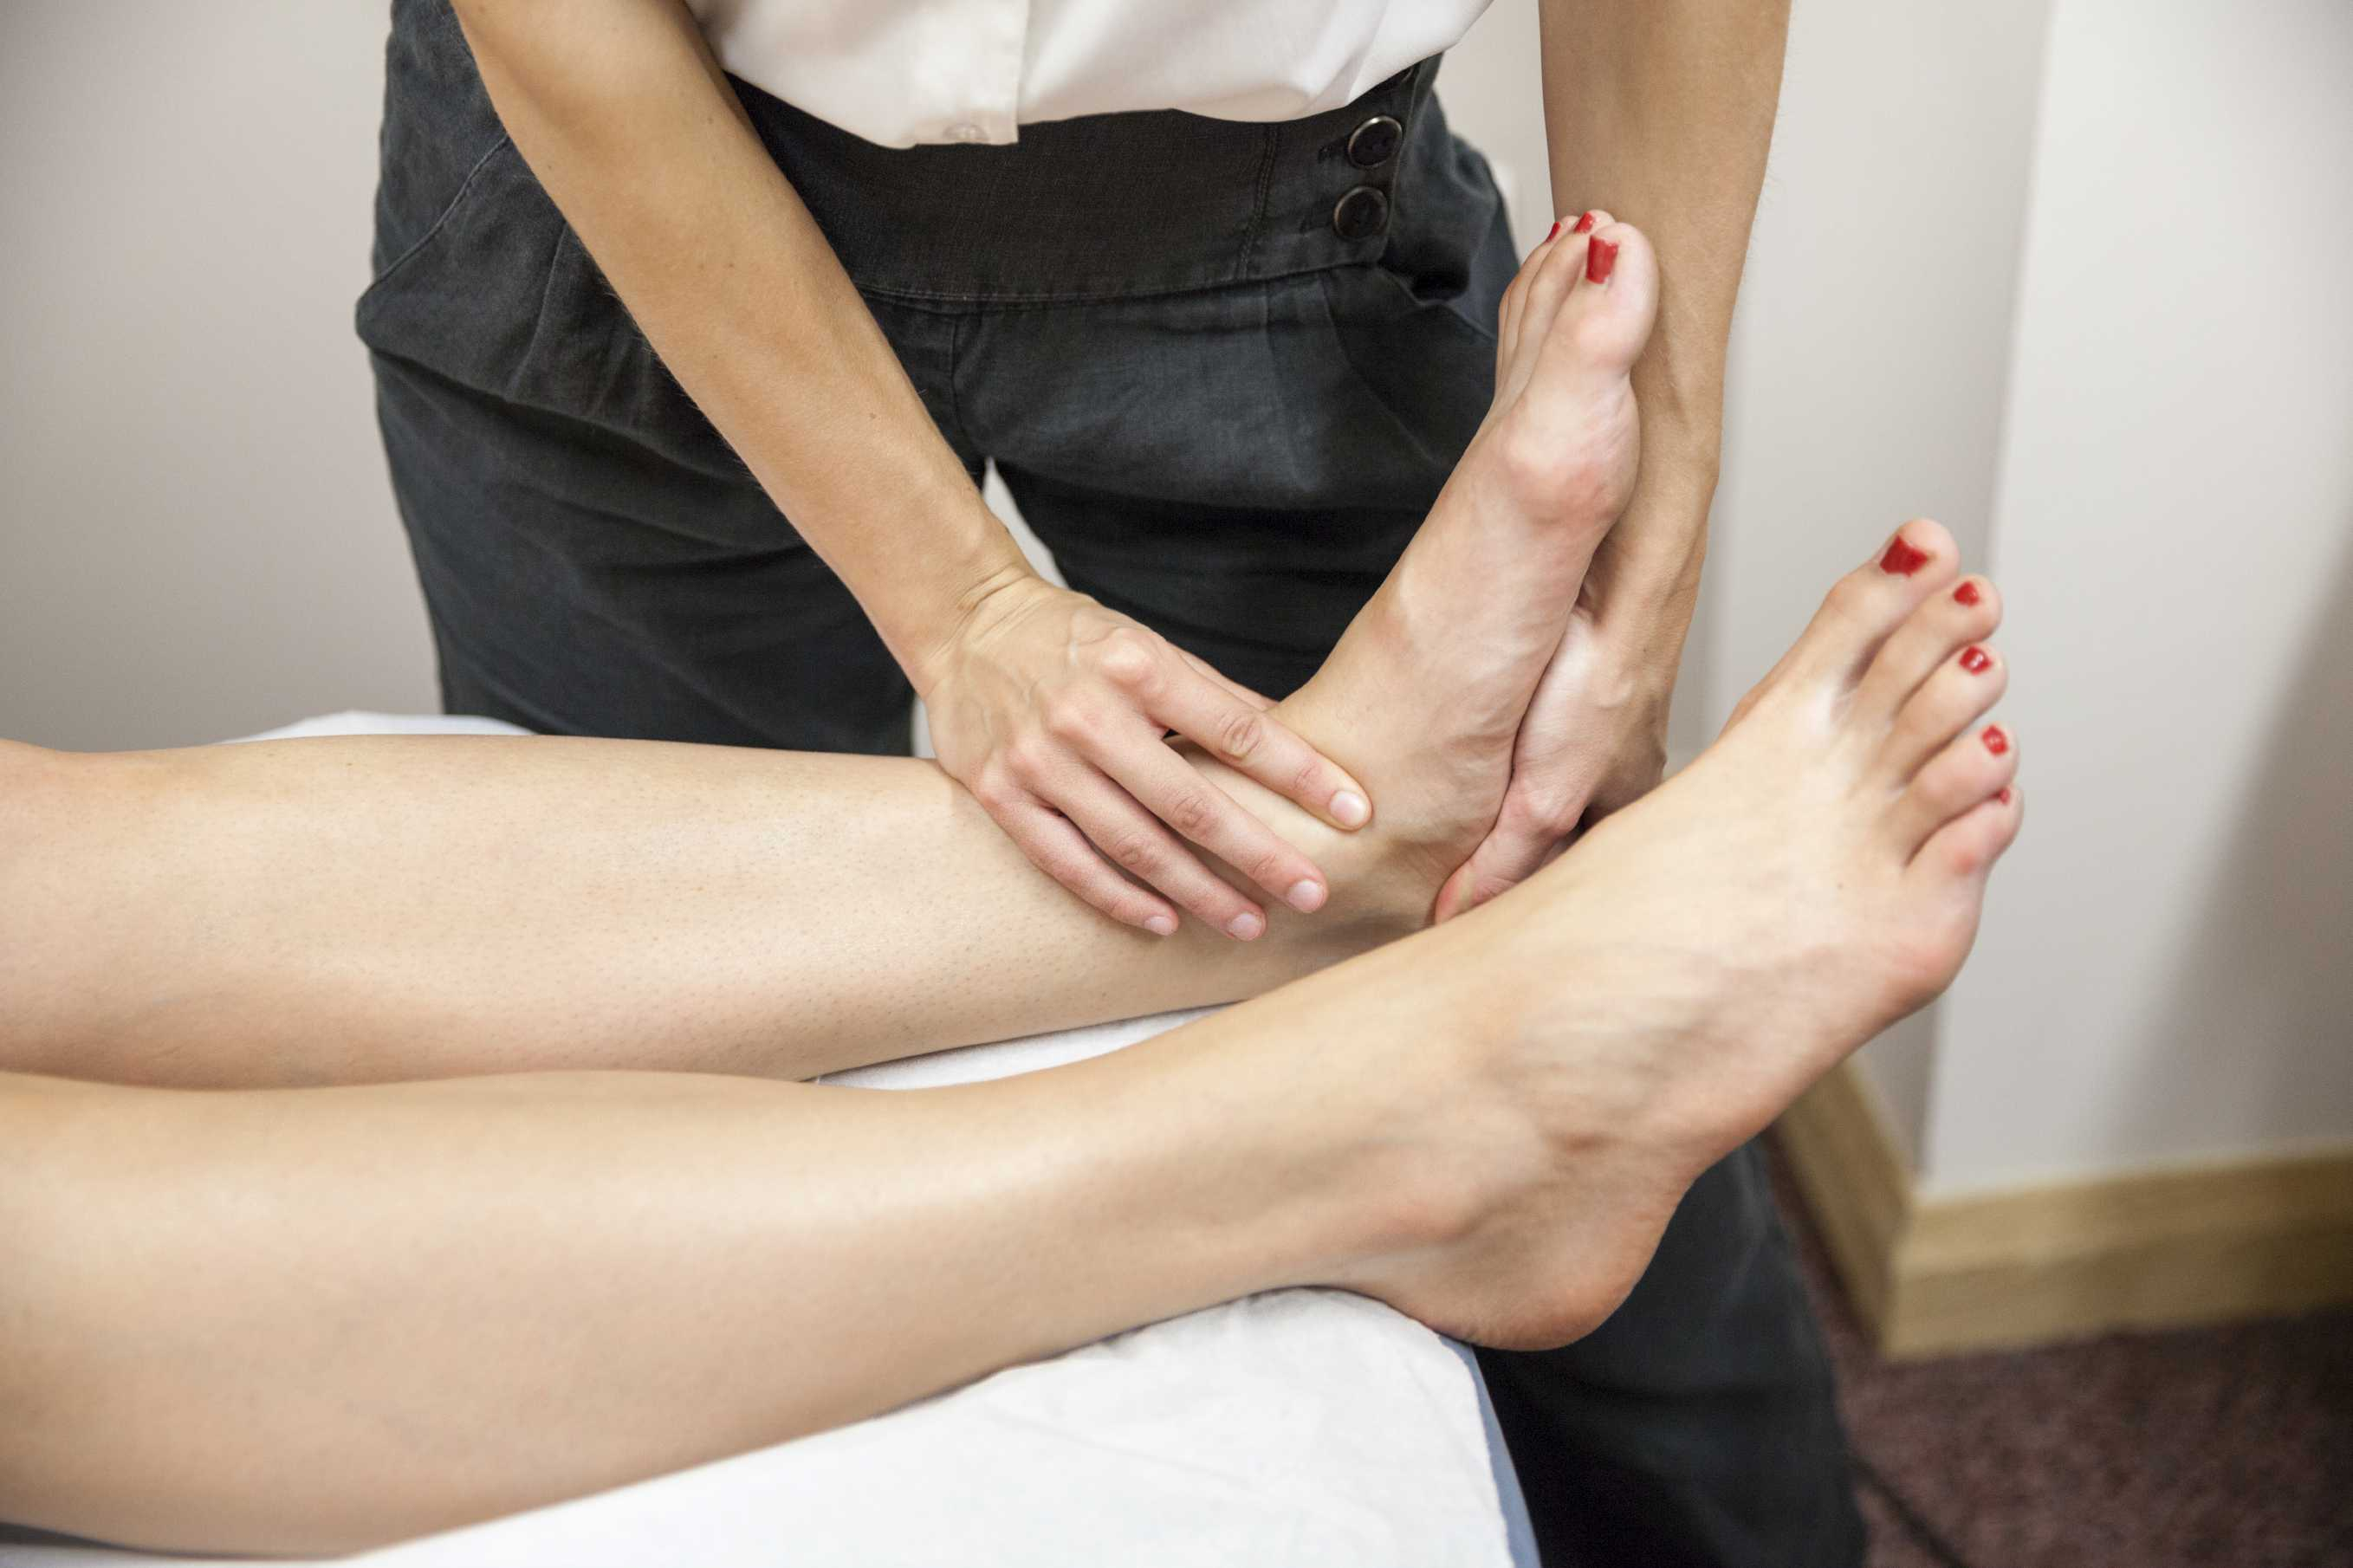 Woman having physio done on her ankle